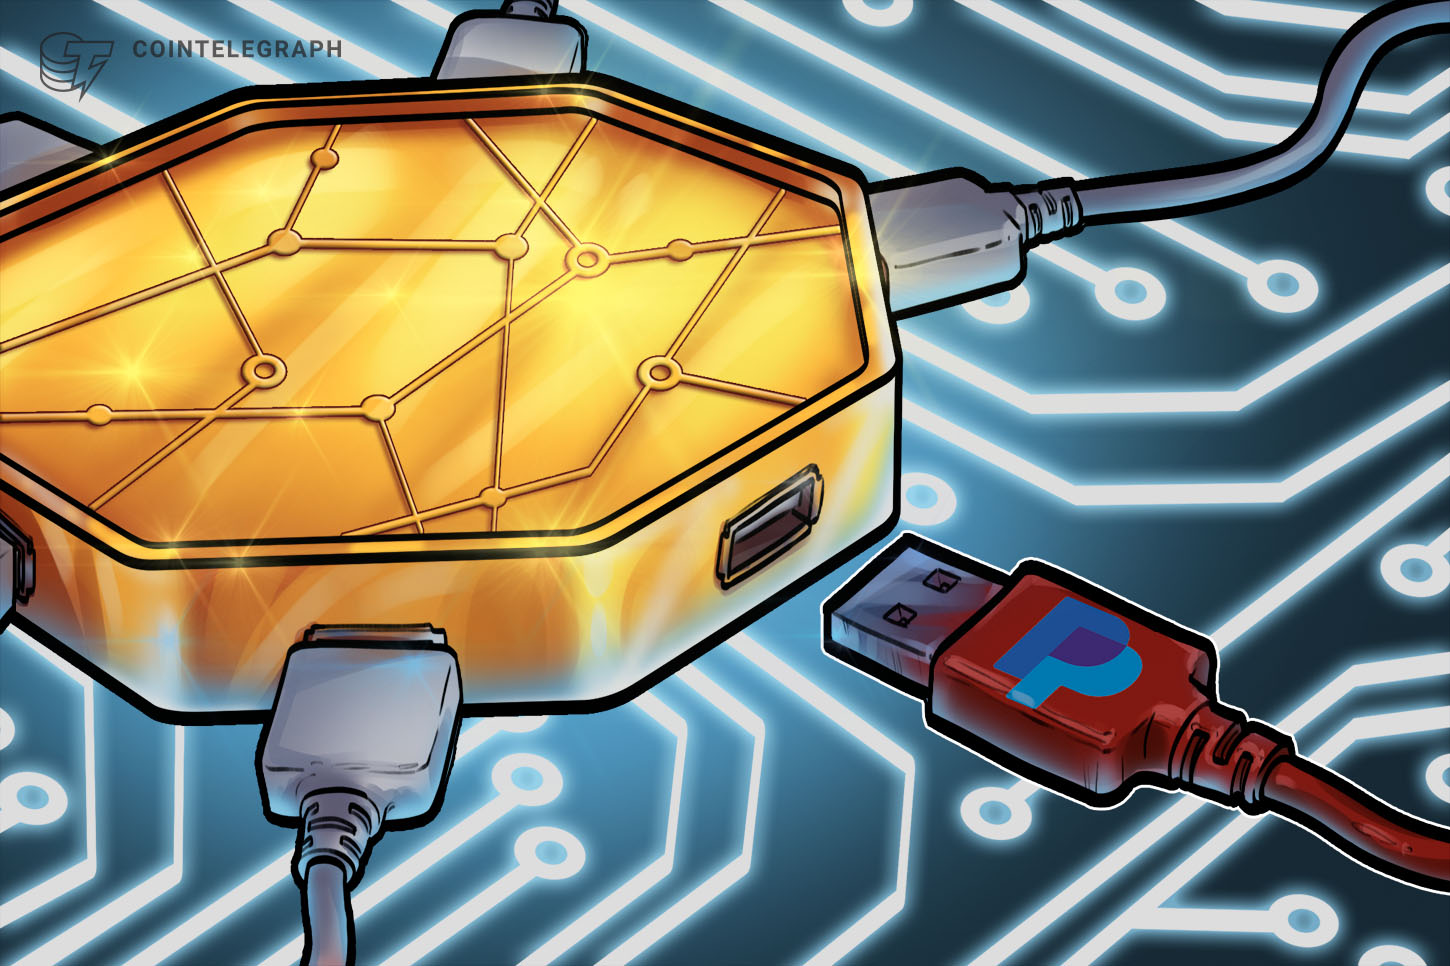 PayPal releases new consumer app for crypto, savings and direct deposits